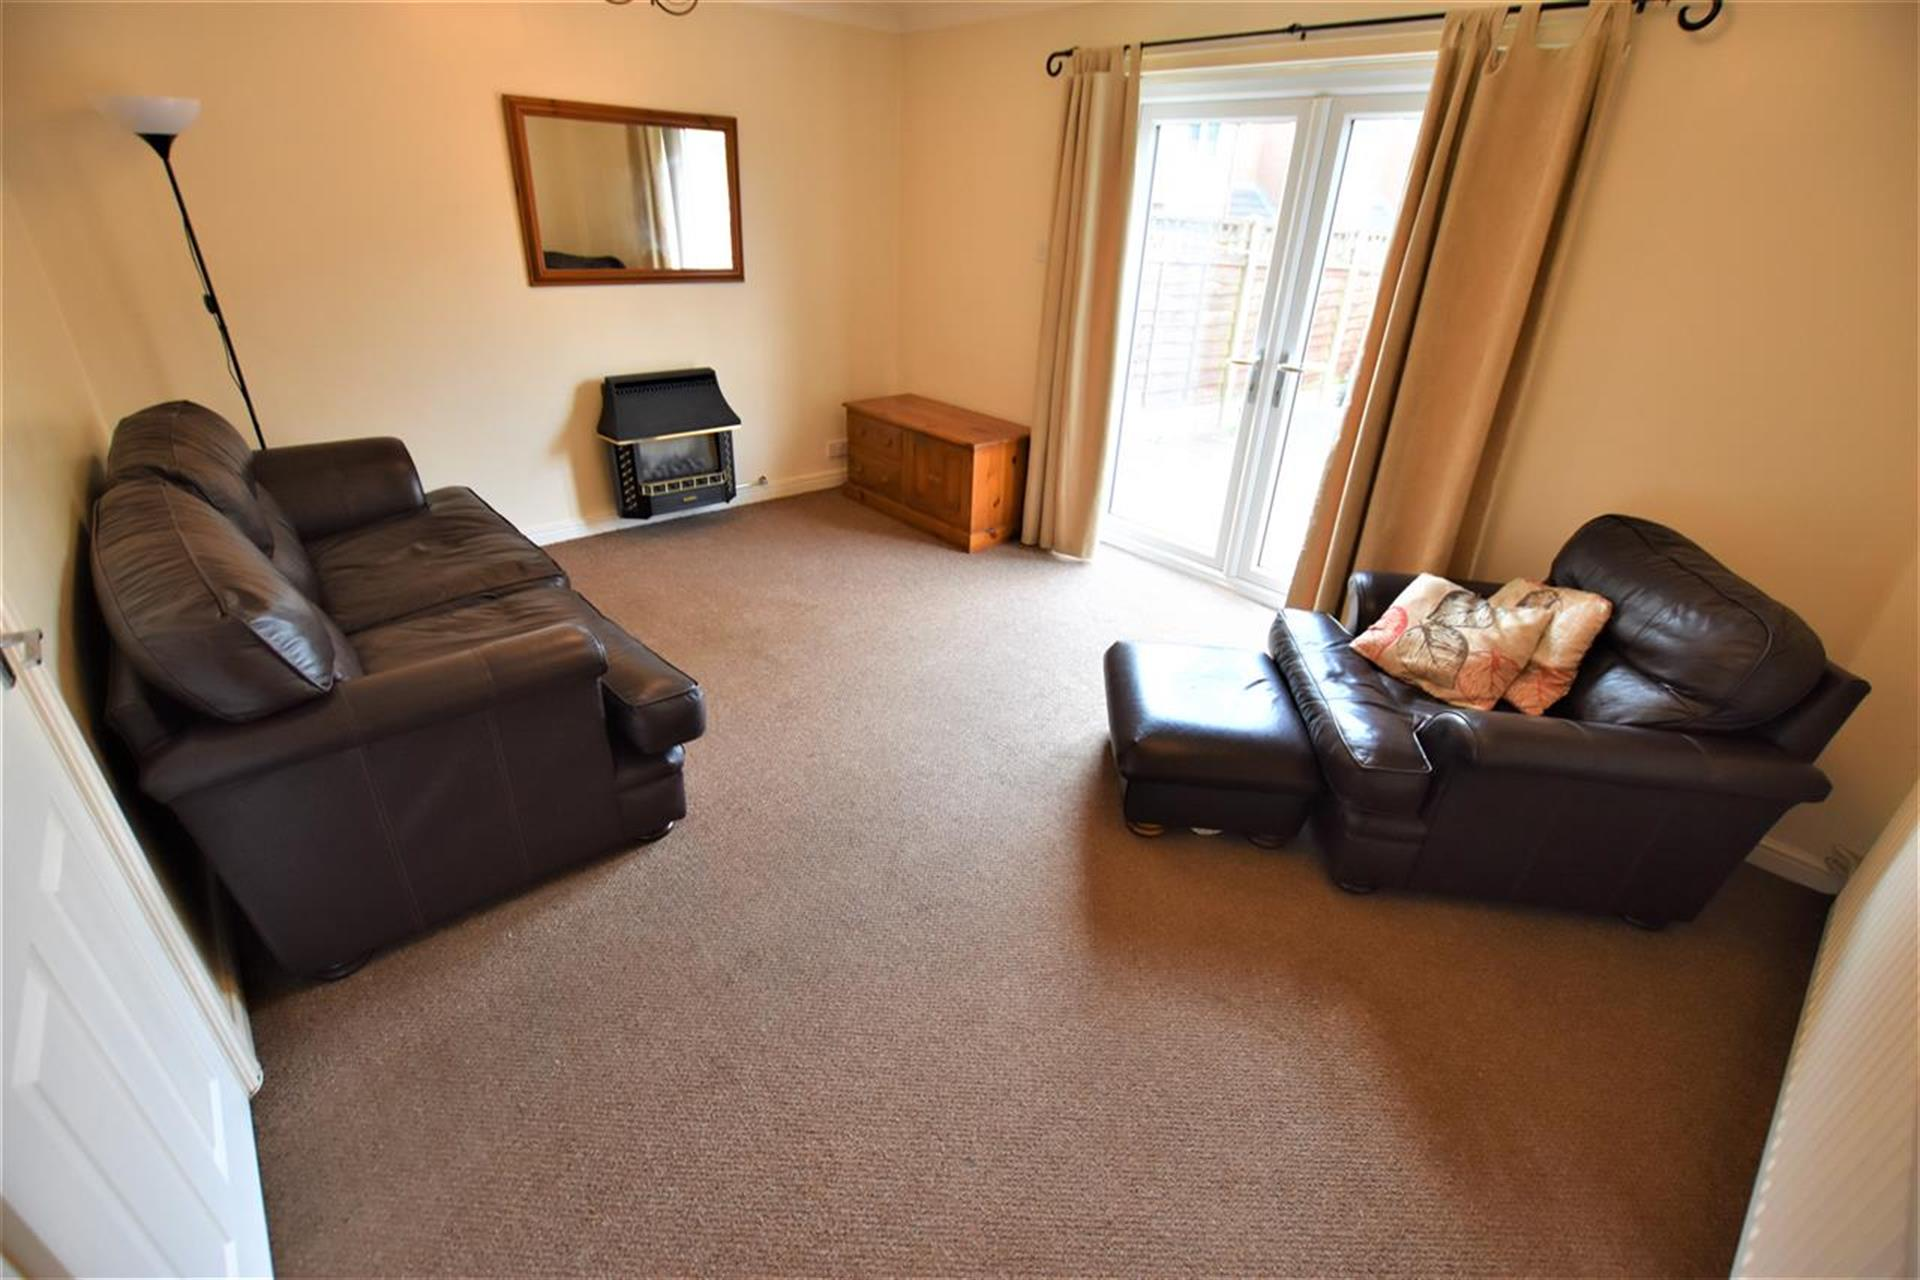 2 Bedroom House For Sale - Lounge